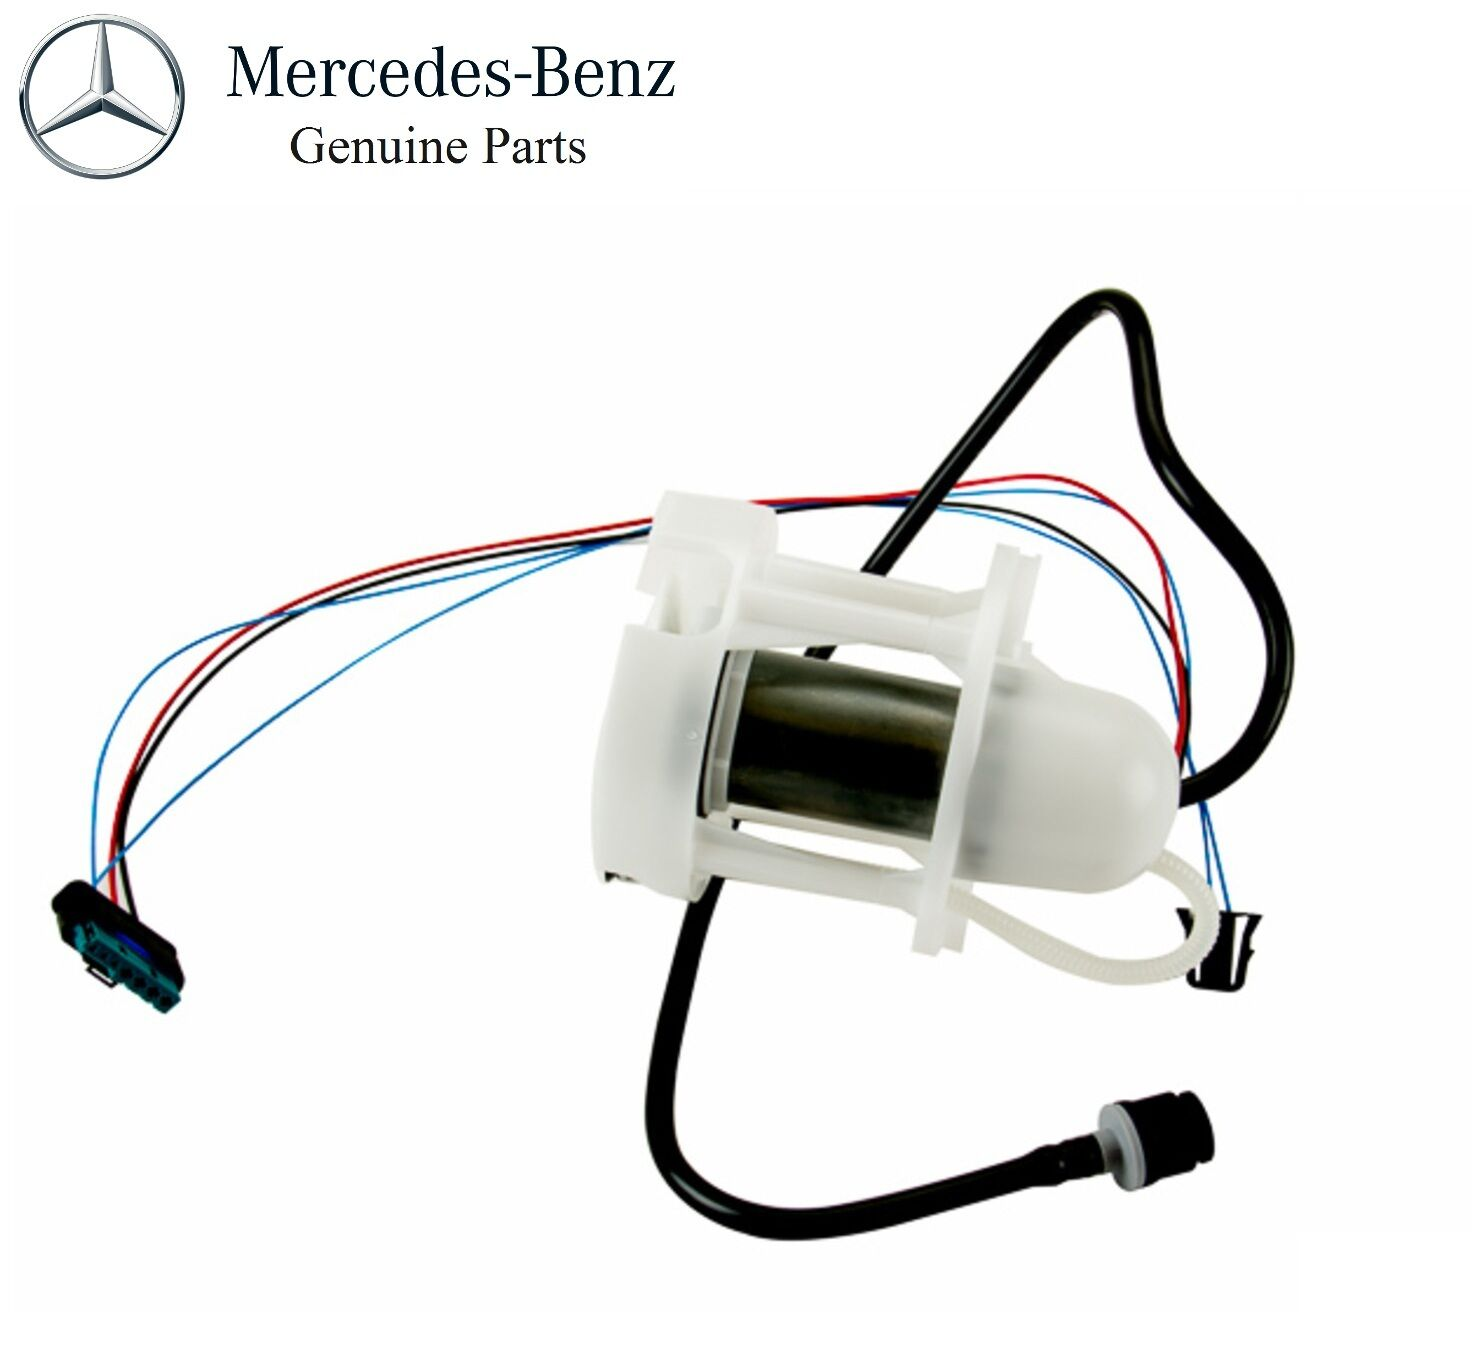 Slk280 Fuel Filter Wiring Library Norton Secured Powered By Verisign